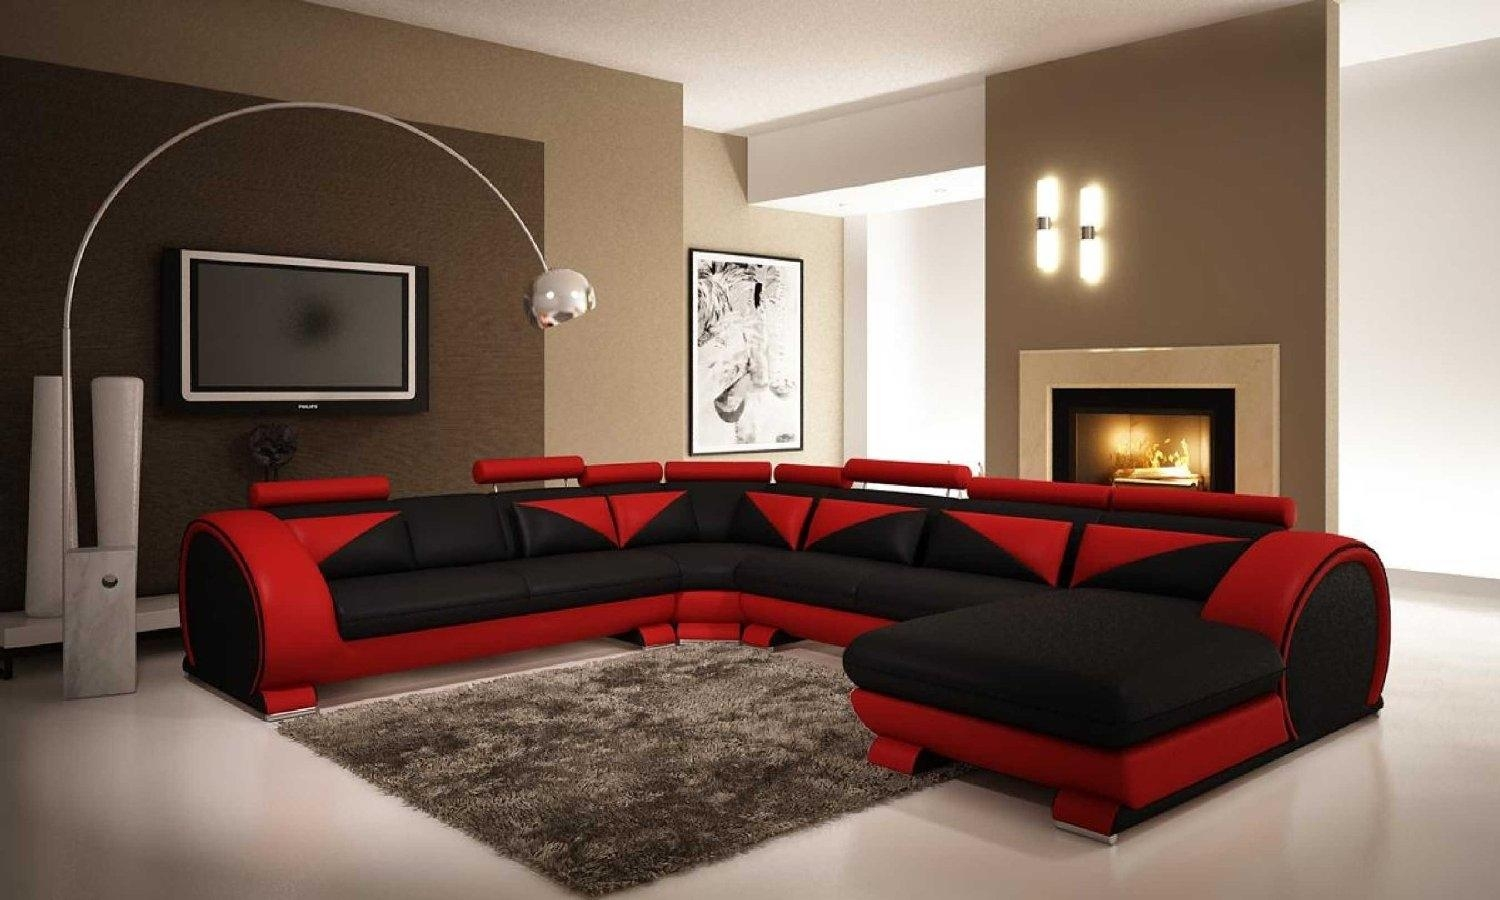 Red Leather Living Room Sets Red Couches Living Room (Image 13 of 20)